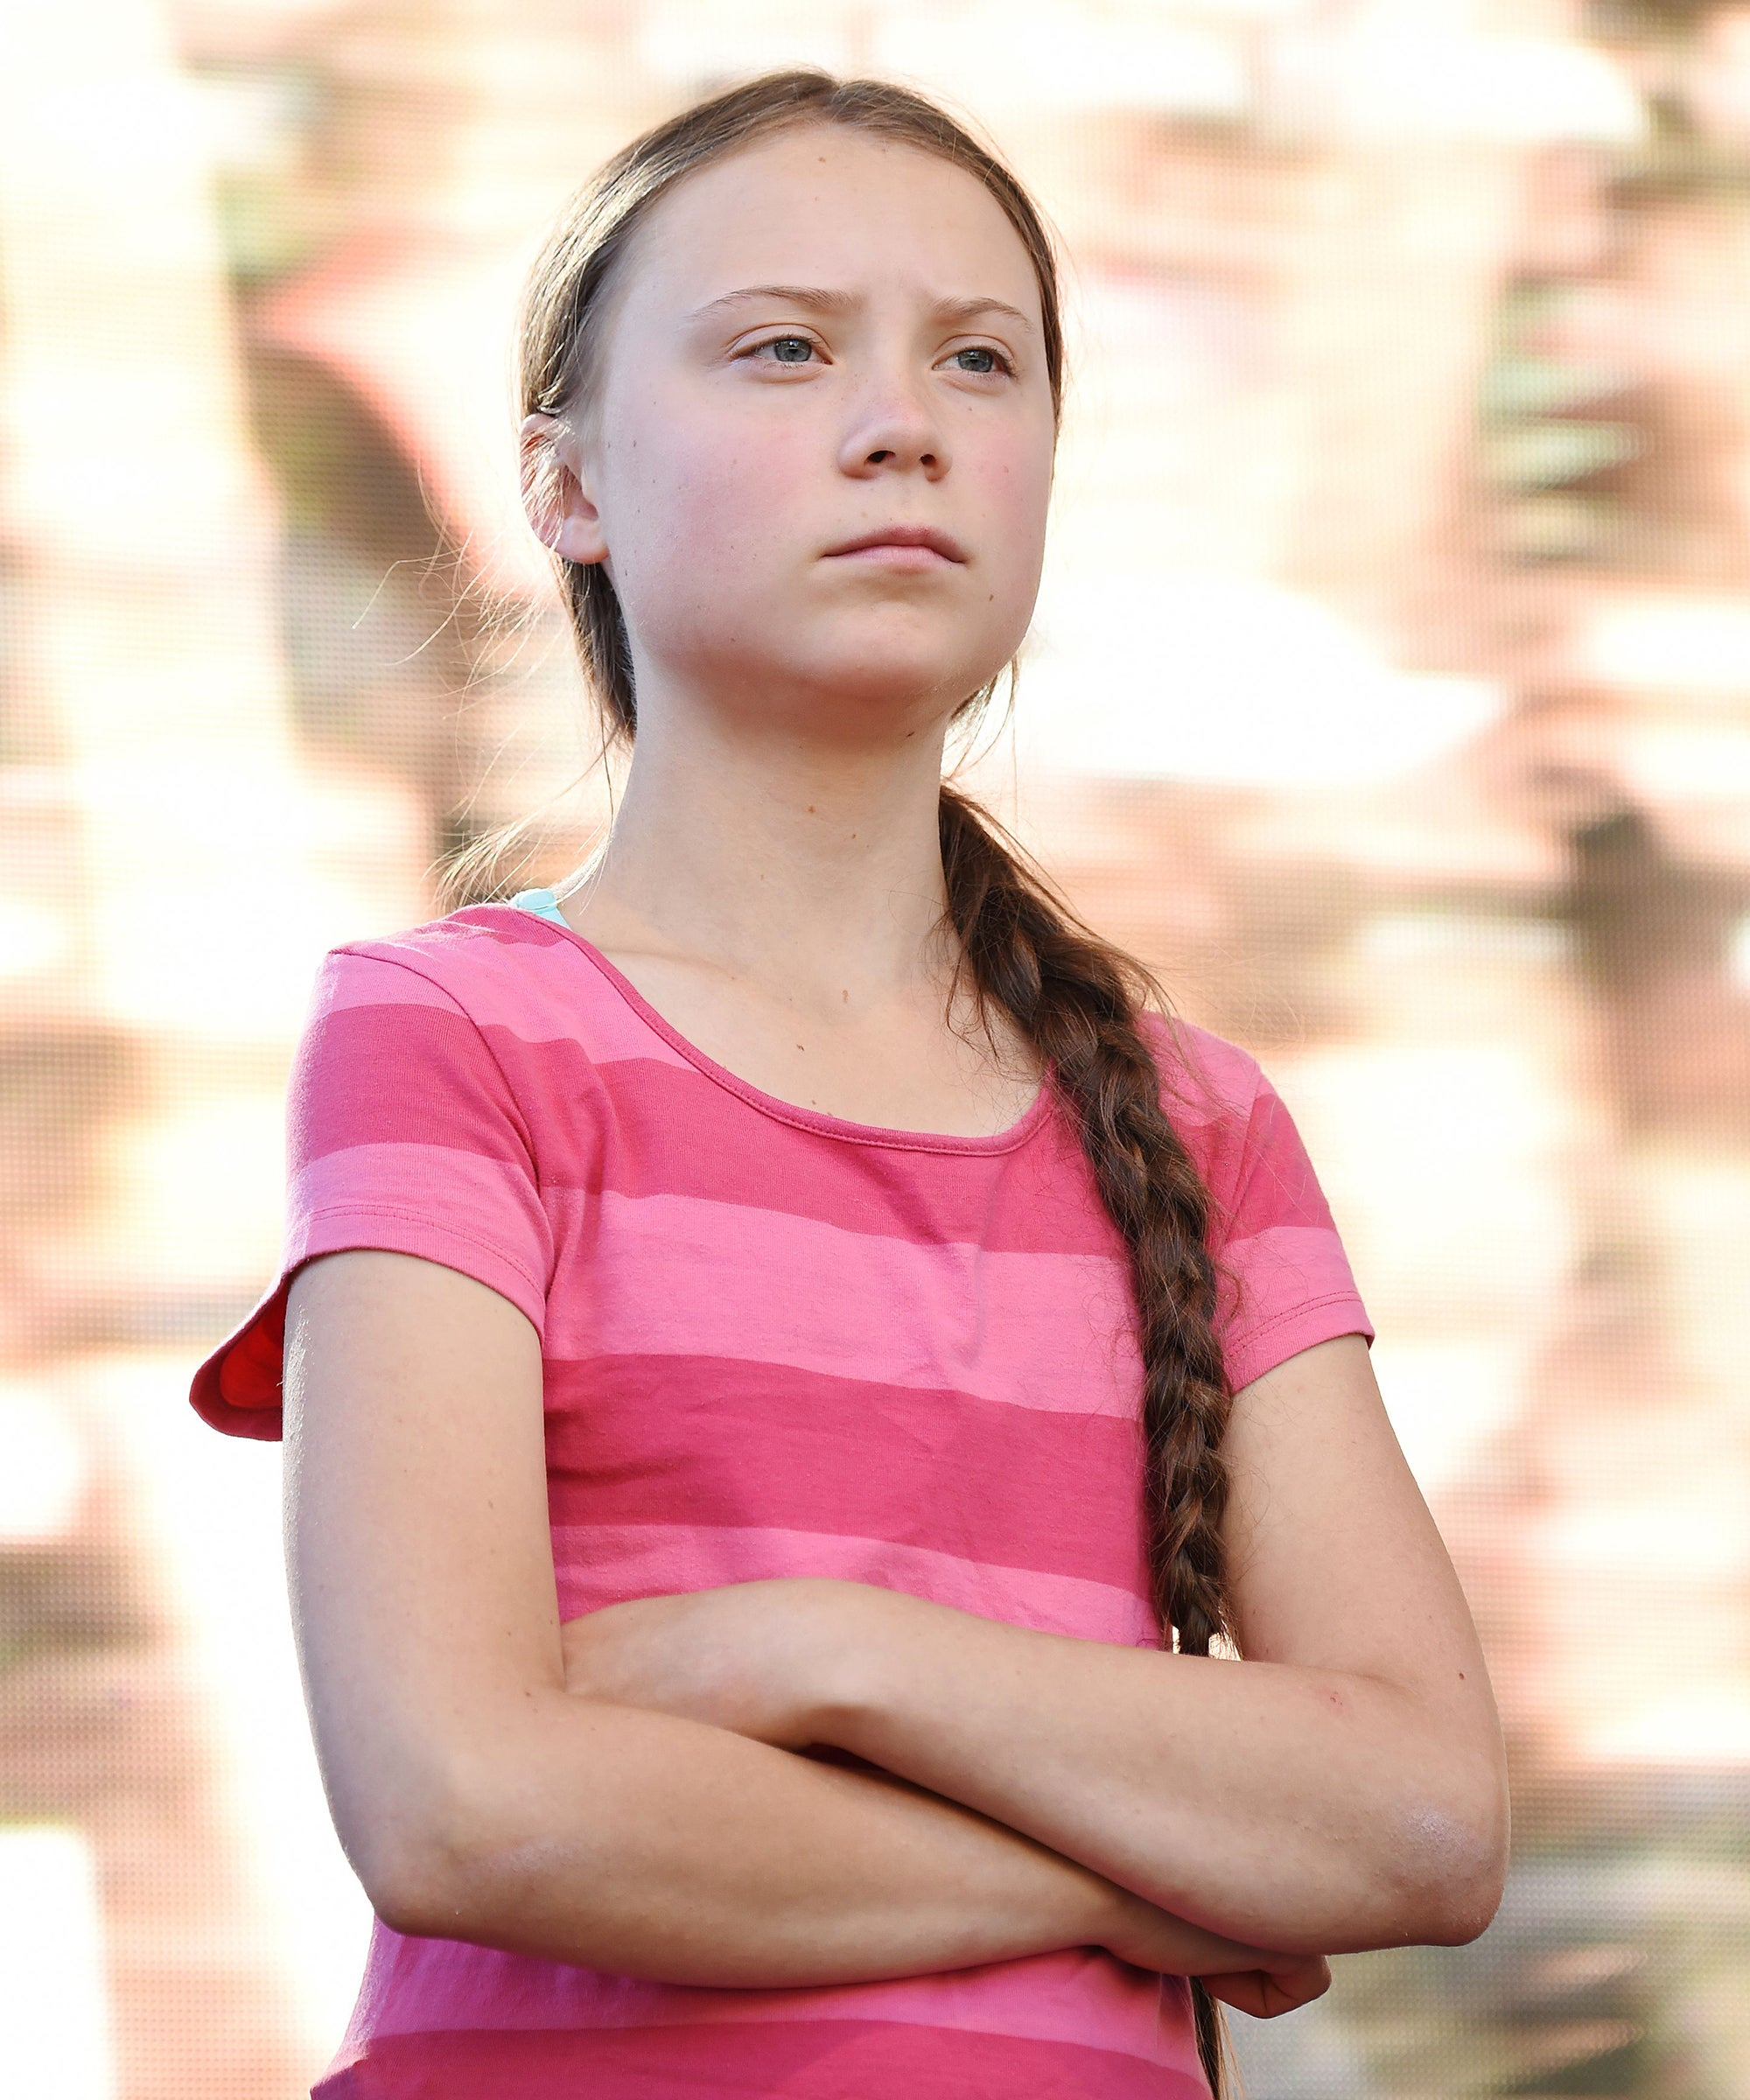 You Won't Believe Why Greta Thunberg Just Rejected This Award